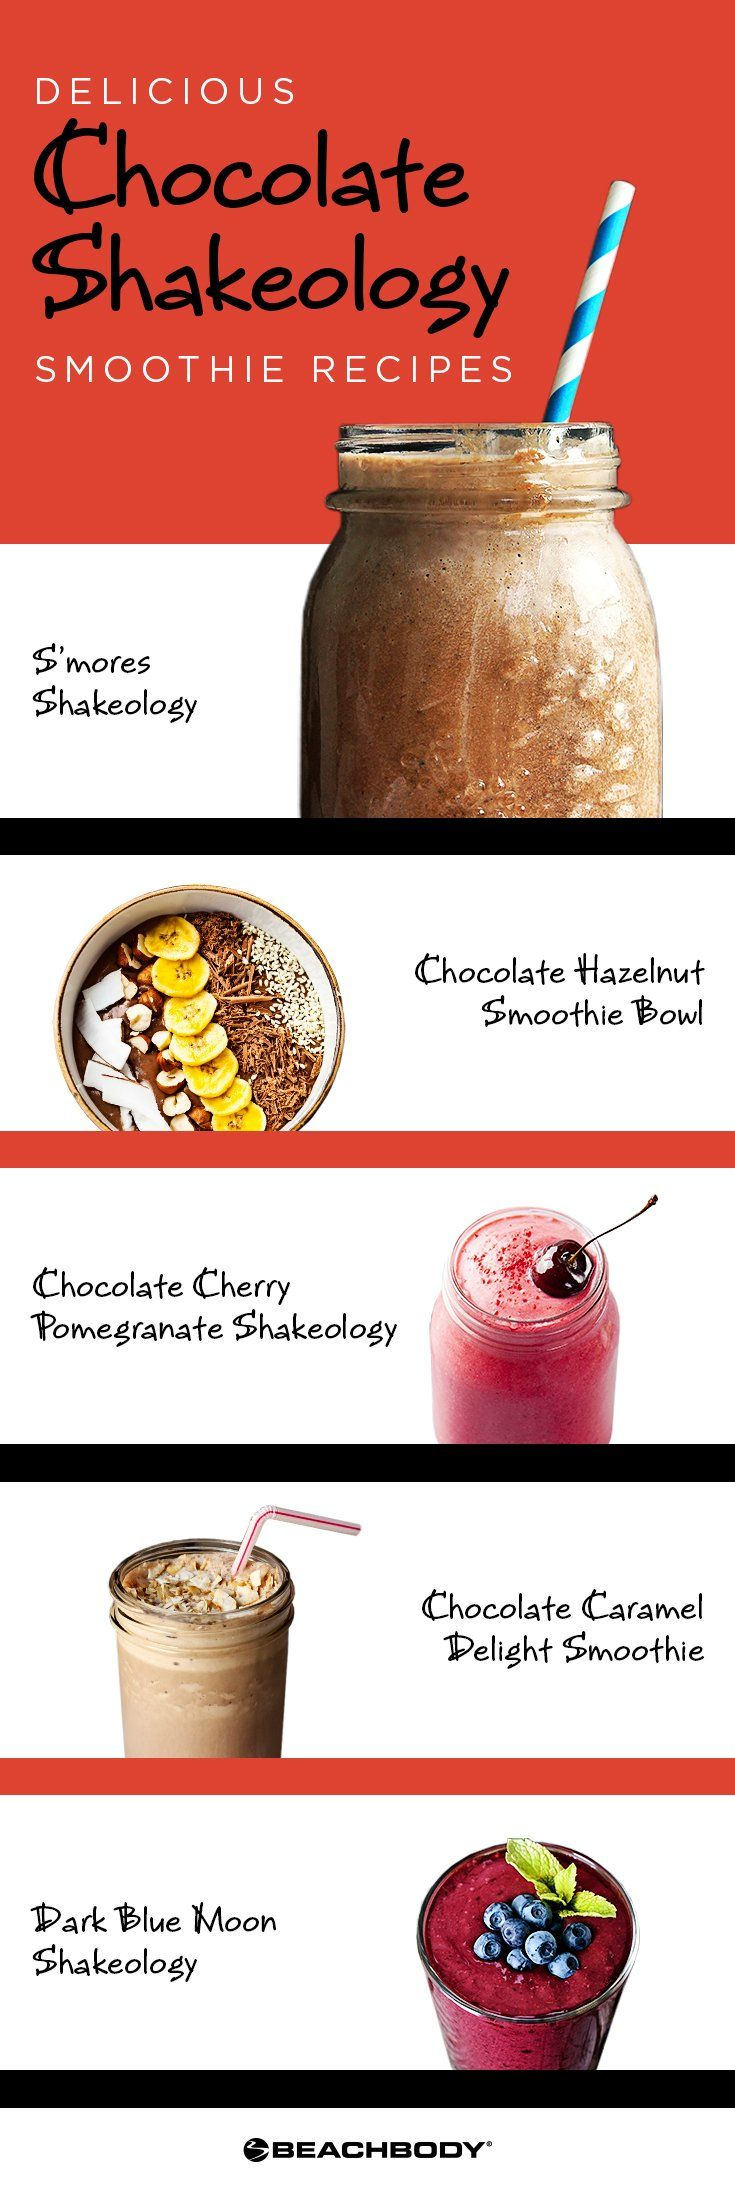 Love chocolate, but also want to stay healthy and reach your nutrition goals? Check out these 10 delicious chocolate Shakeology recipes! shakeology recipe // best smoothie recipes // 21 day fix recipes // Shakeology // Vegan Shakeology recipes // Beachbody // Beachbody Blog // #shakeology #21dayfix #21dayfixrecipe #smoothierecipes #smoothies